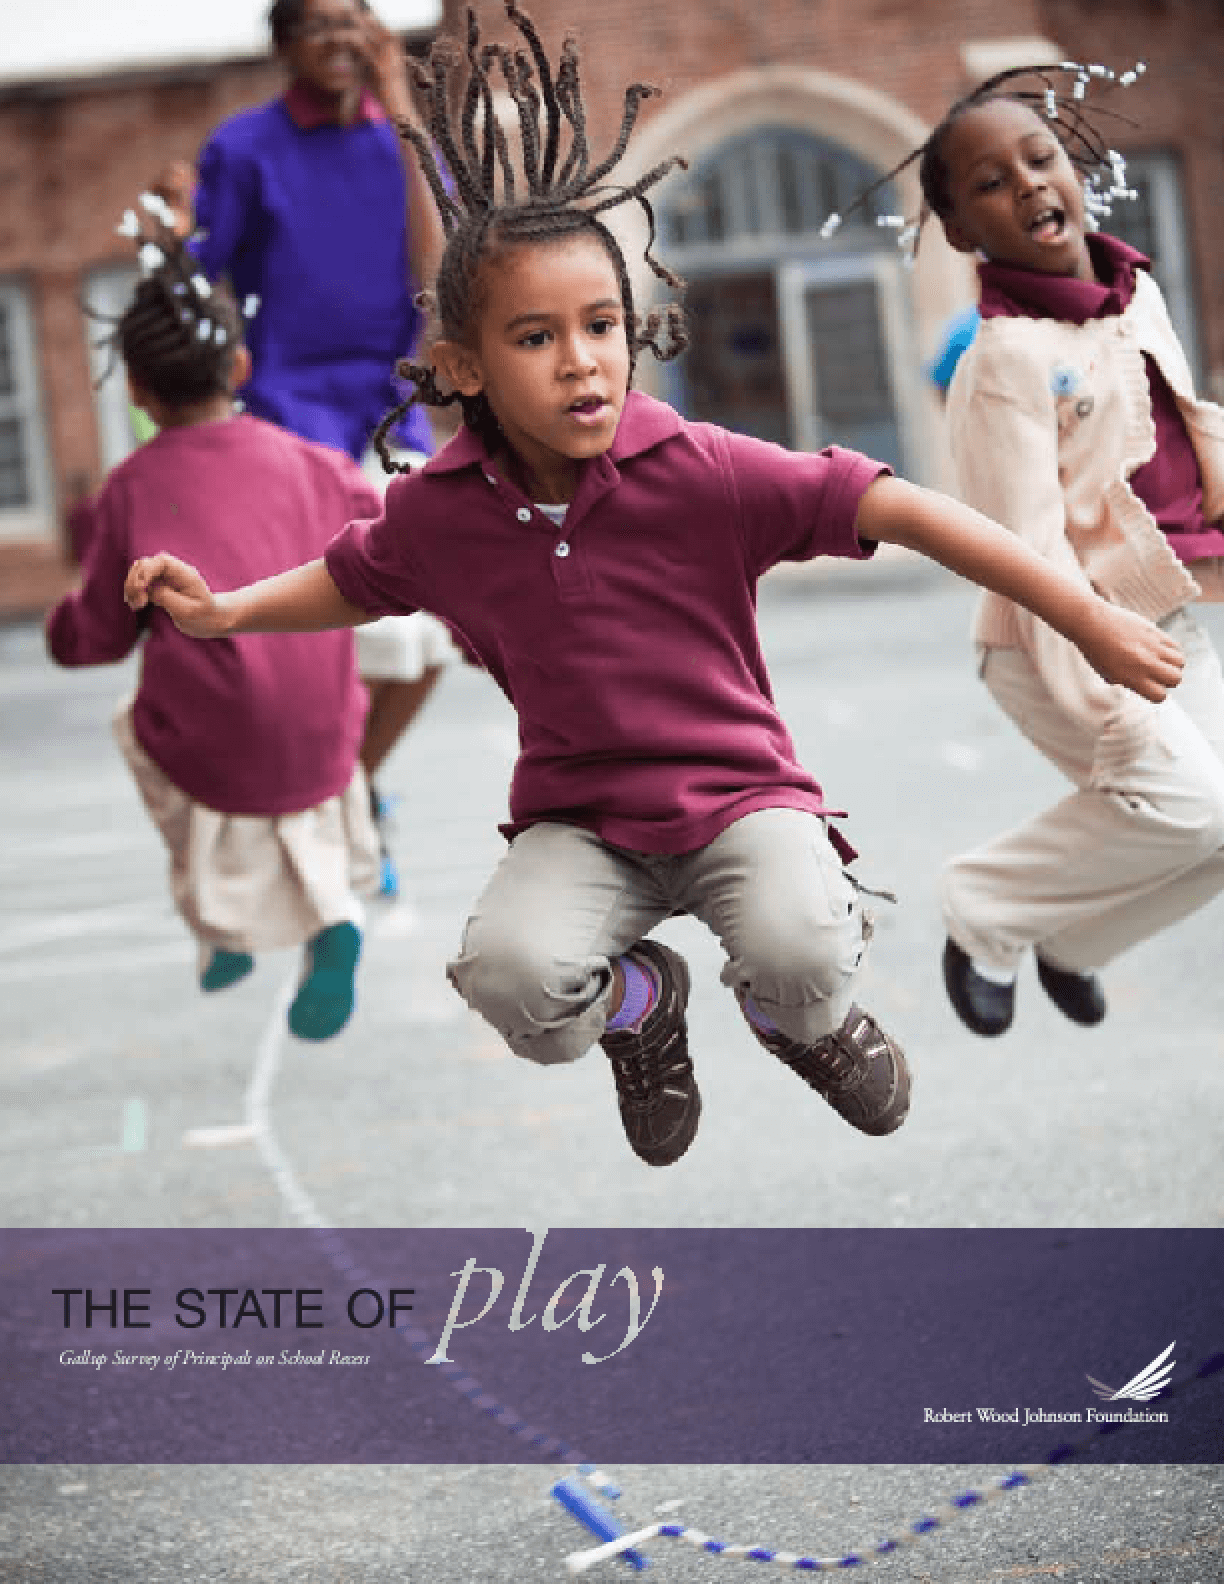 The State of Play: Gallup Survey of Principals on School Recess